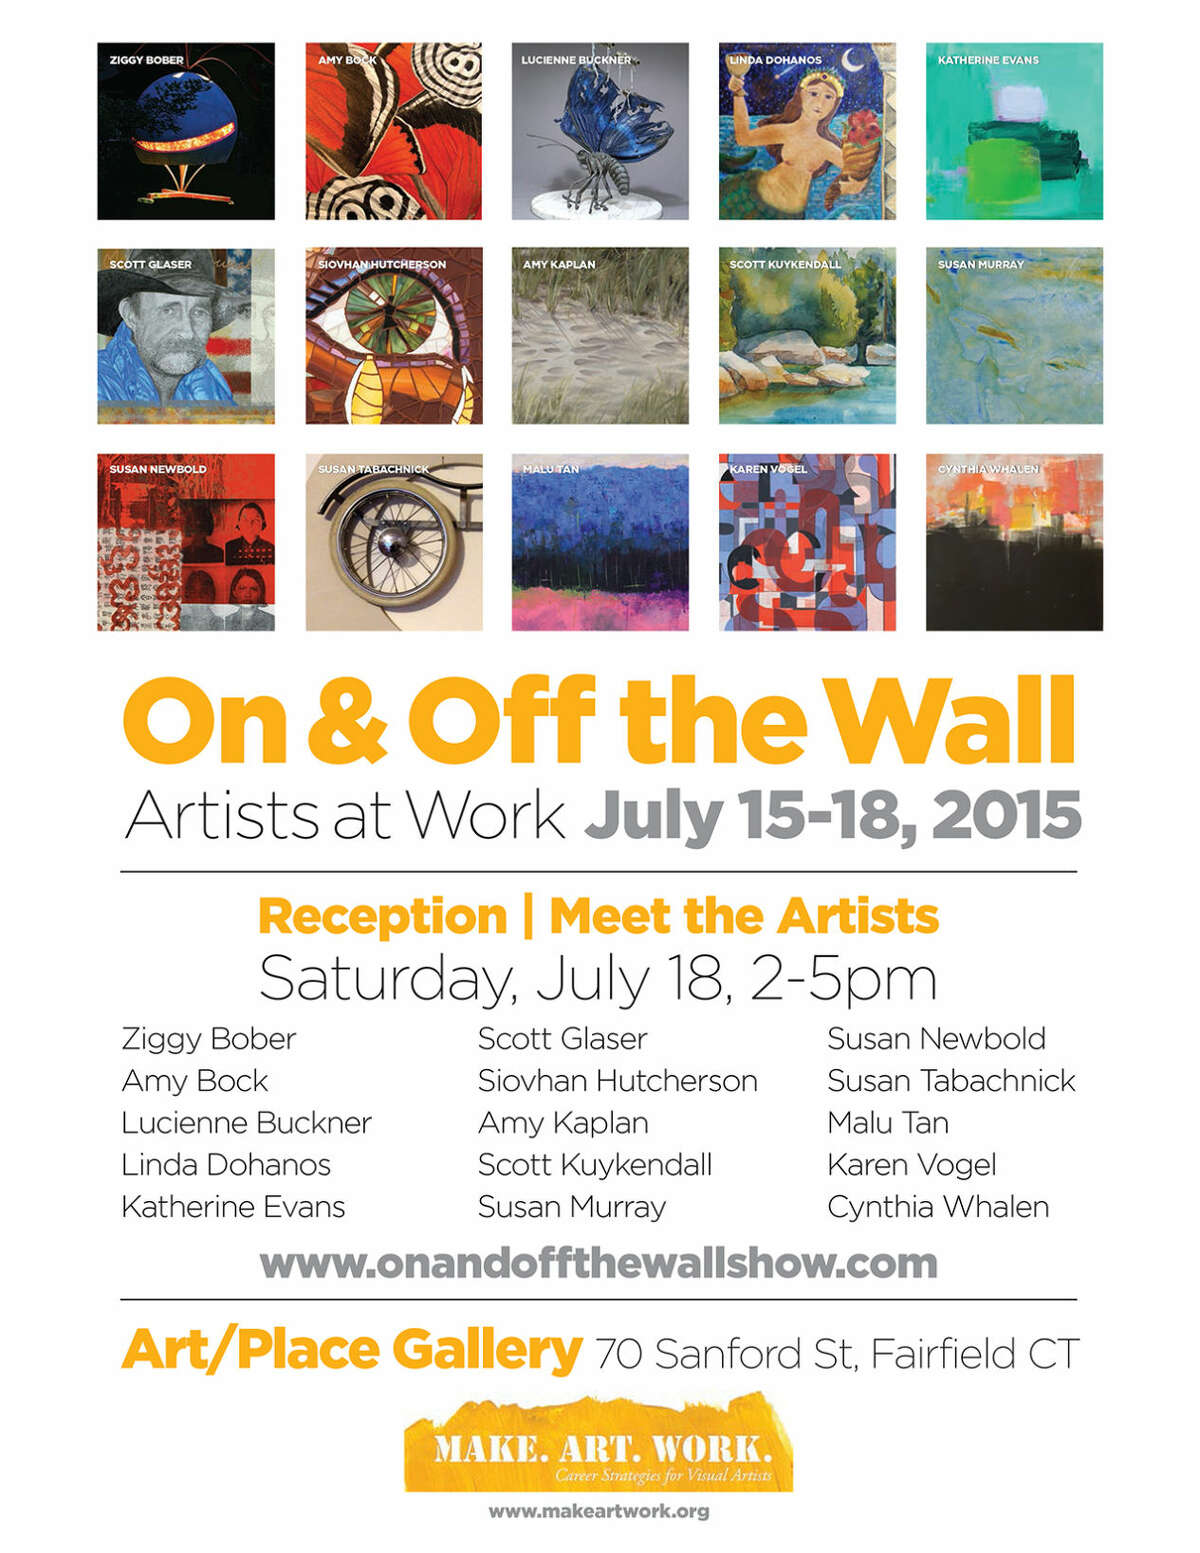 On & Off the Wall - Artists at Work July 15-18, 2015